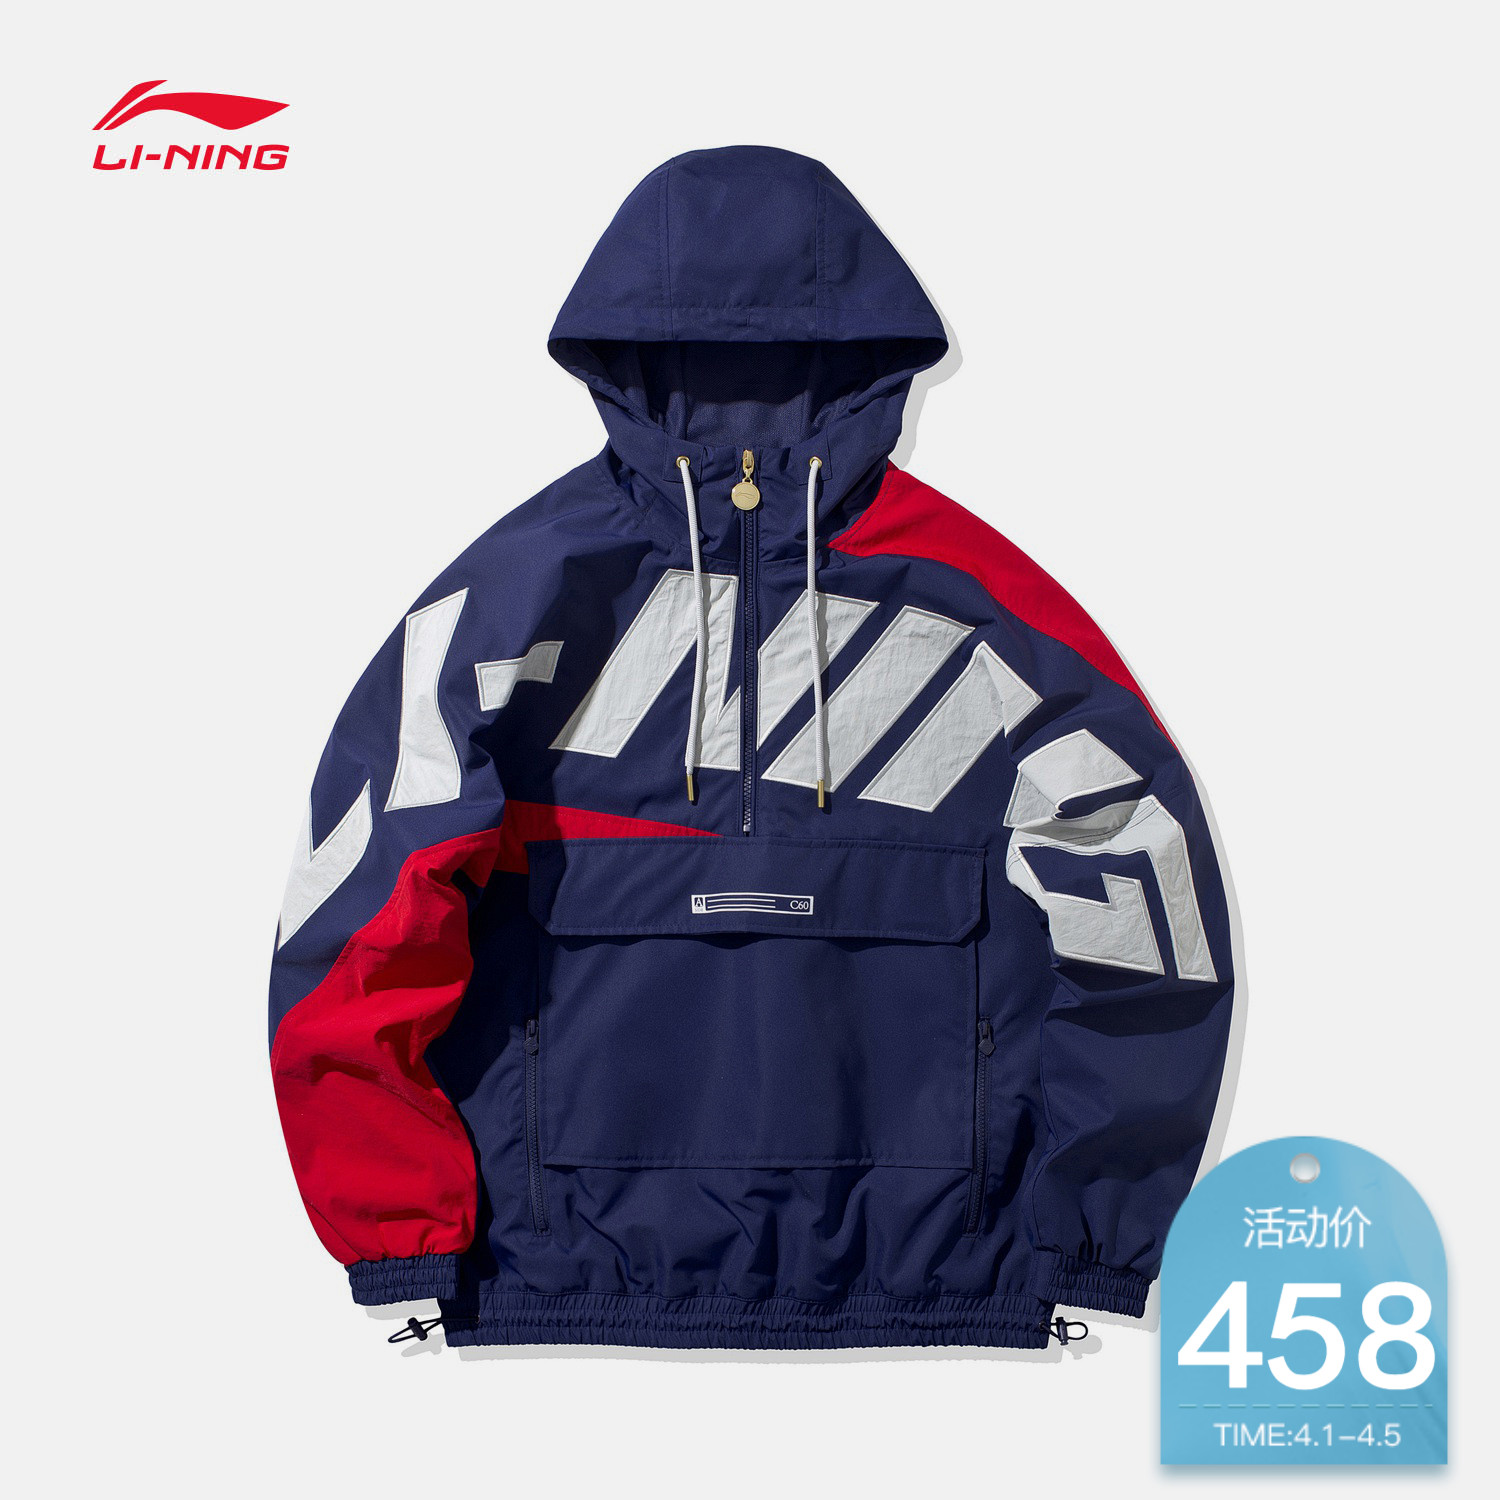 Li Ning windcoat men and women spring flagship official website couple hooded loose jacket windproof hooded thin sports jacket